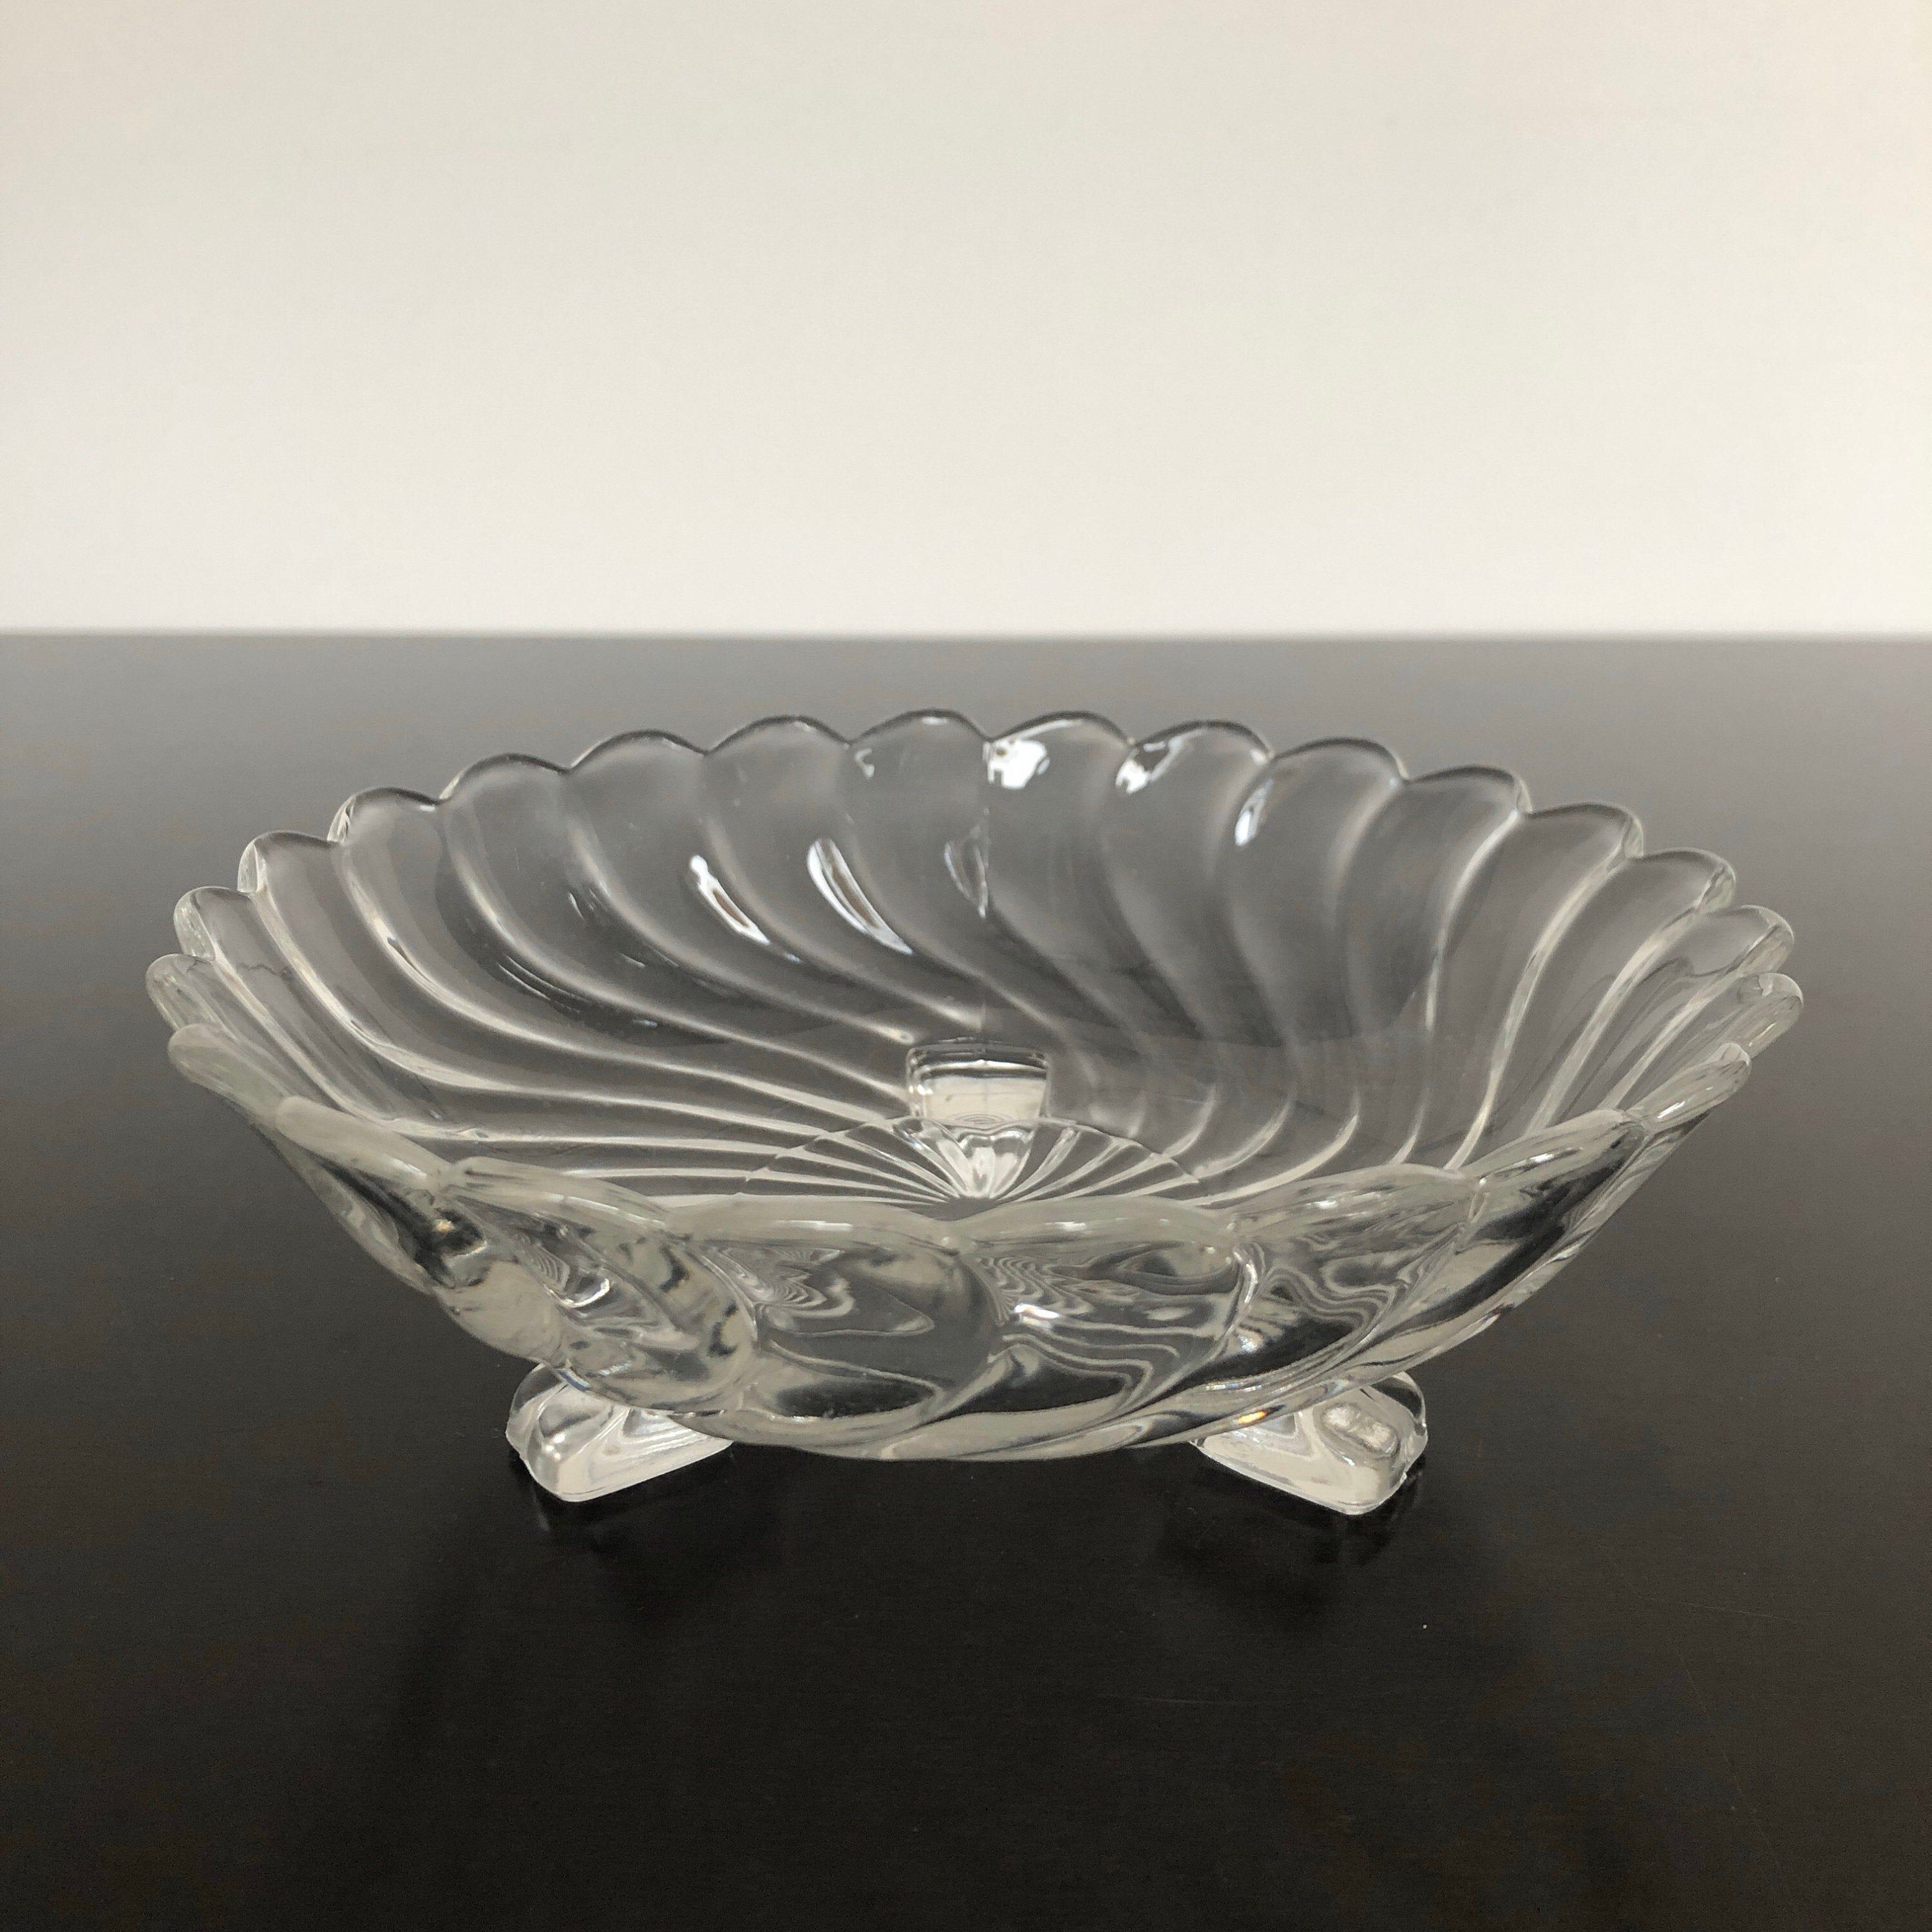 Tri Footed Vintage Clear Pressed Glass Footed Swirl Bowl With Scalloped Rim In 2020 Pressed Glass Swirl Bowl